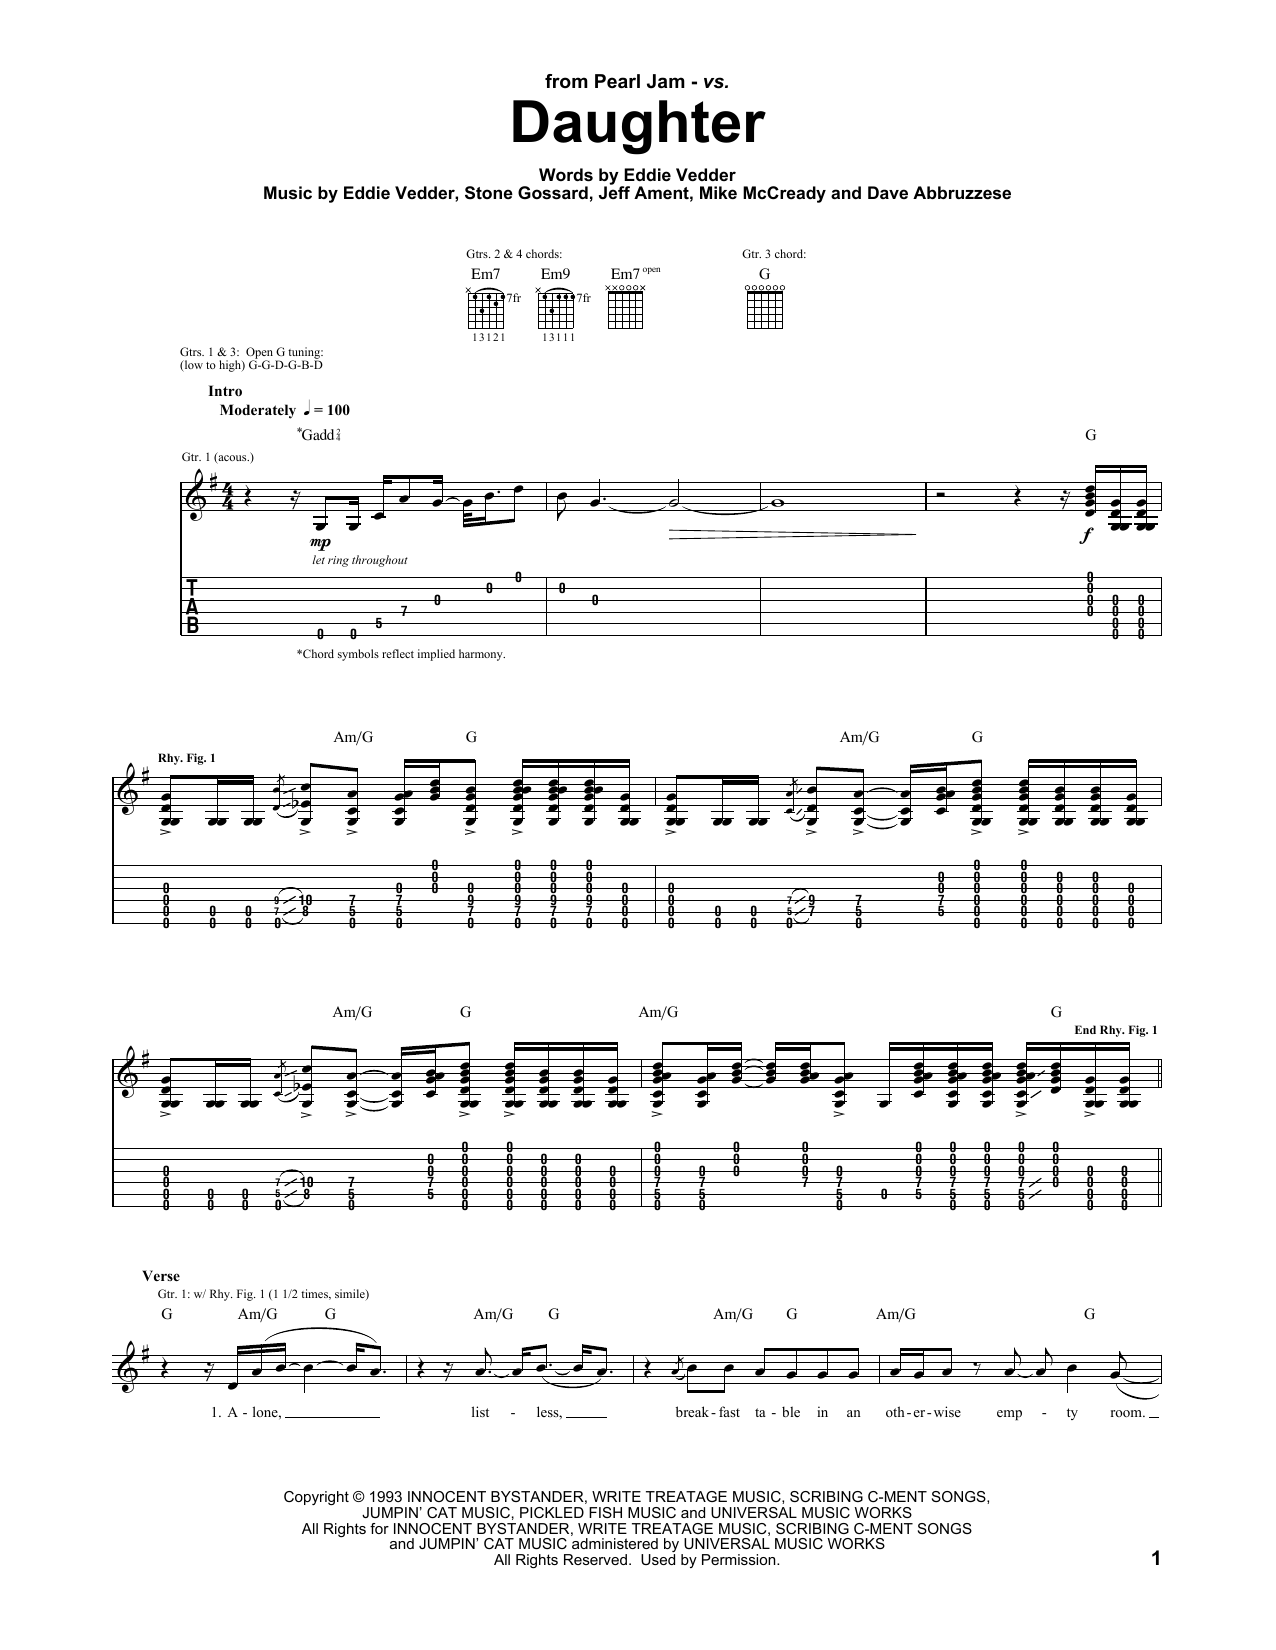 Pearl Jam Daughter sheet music notes and chords. Download Printable PDF.